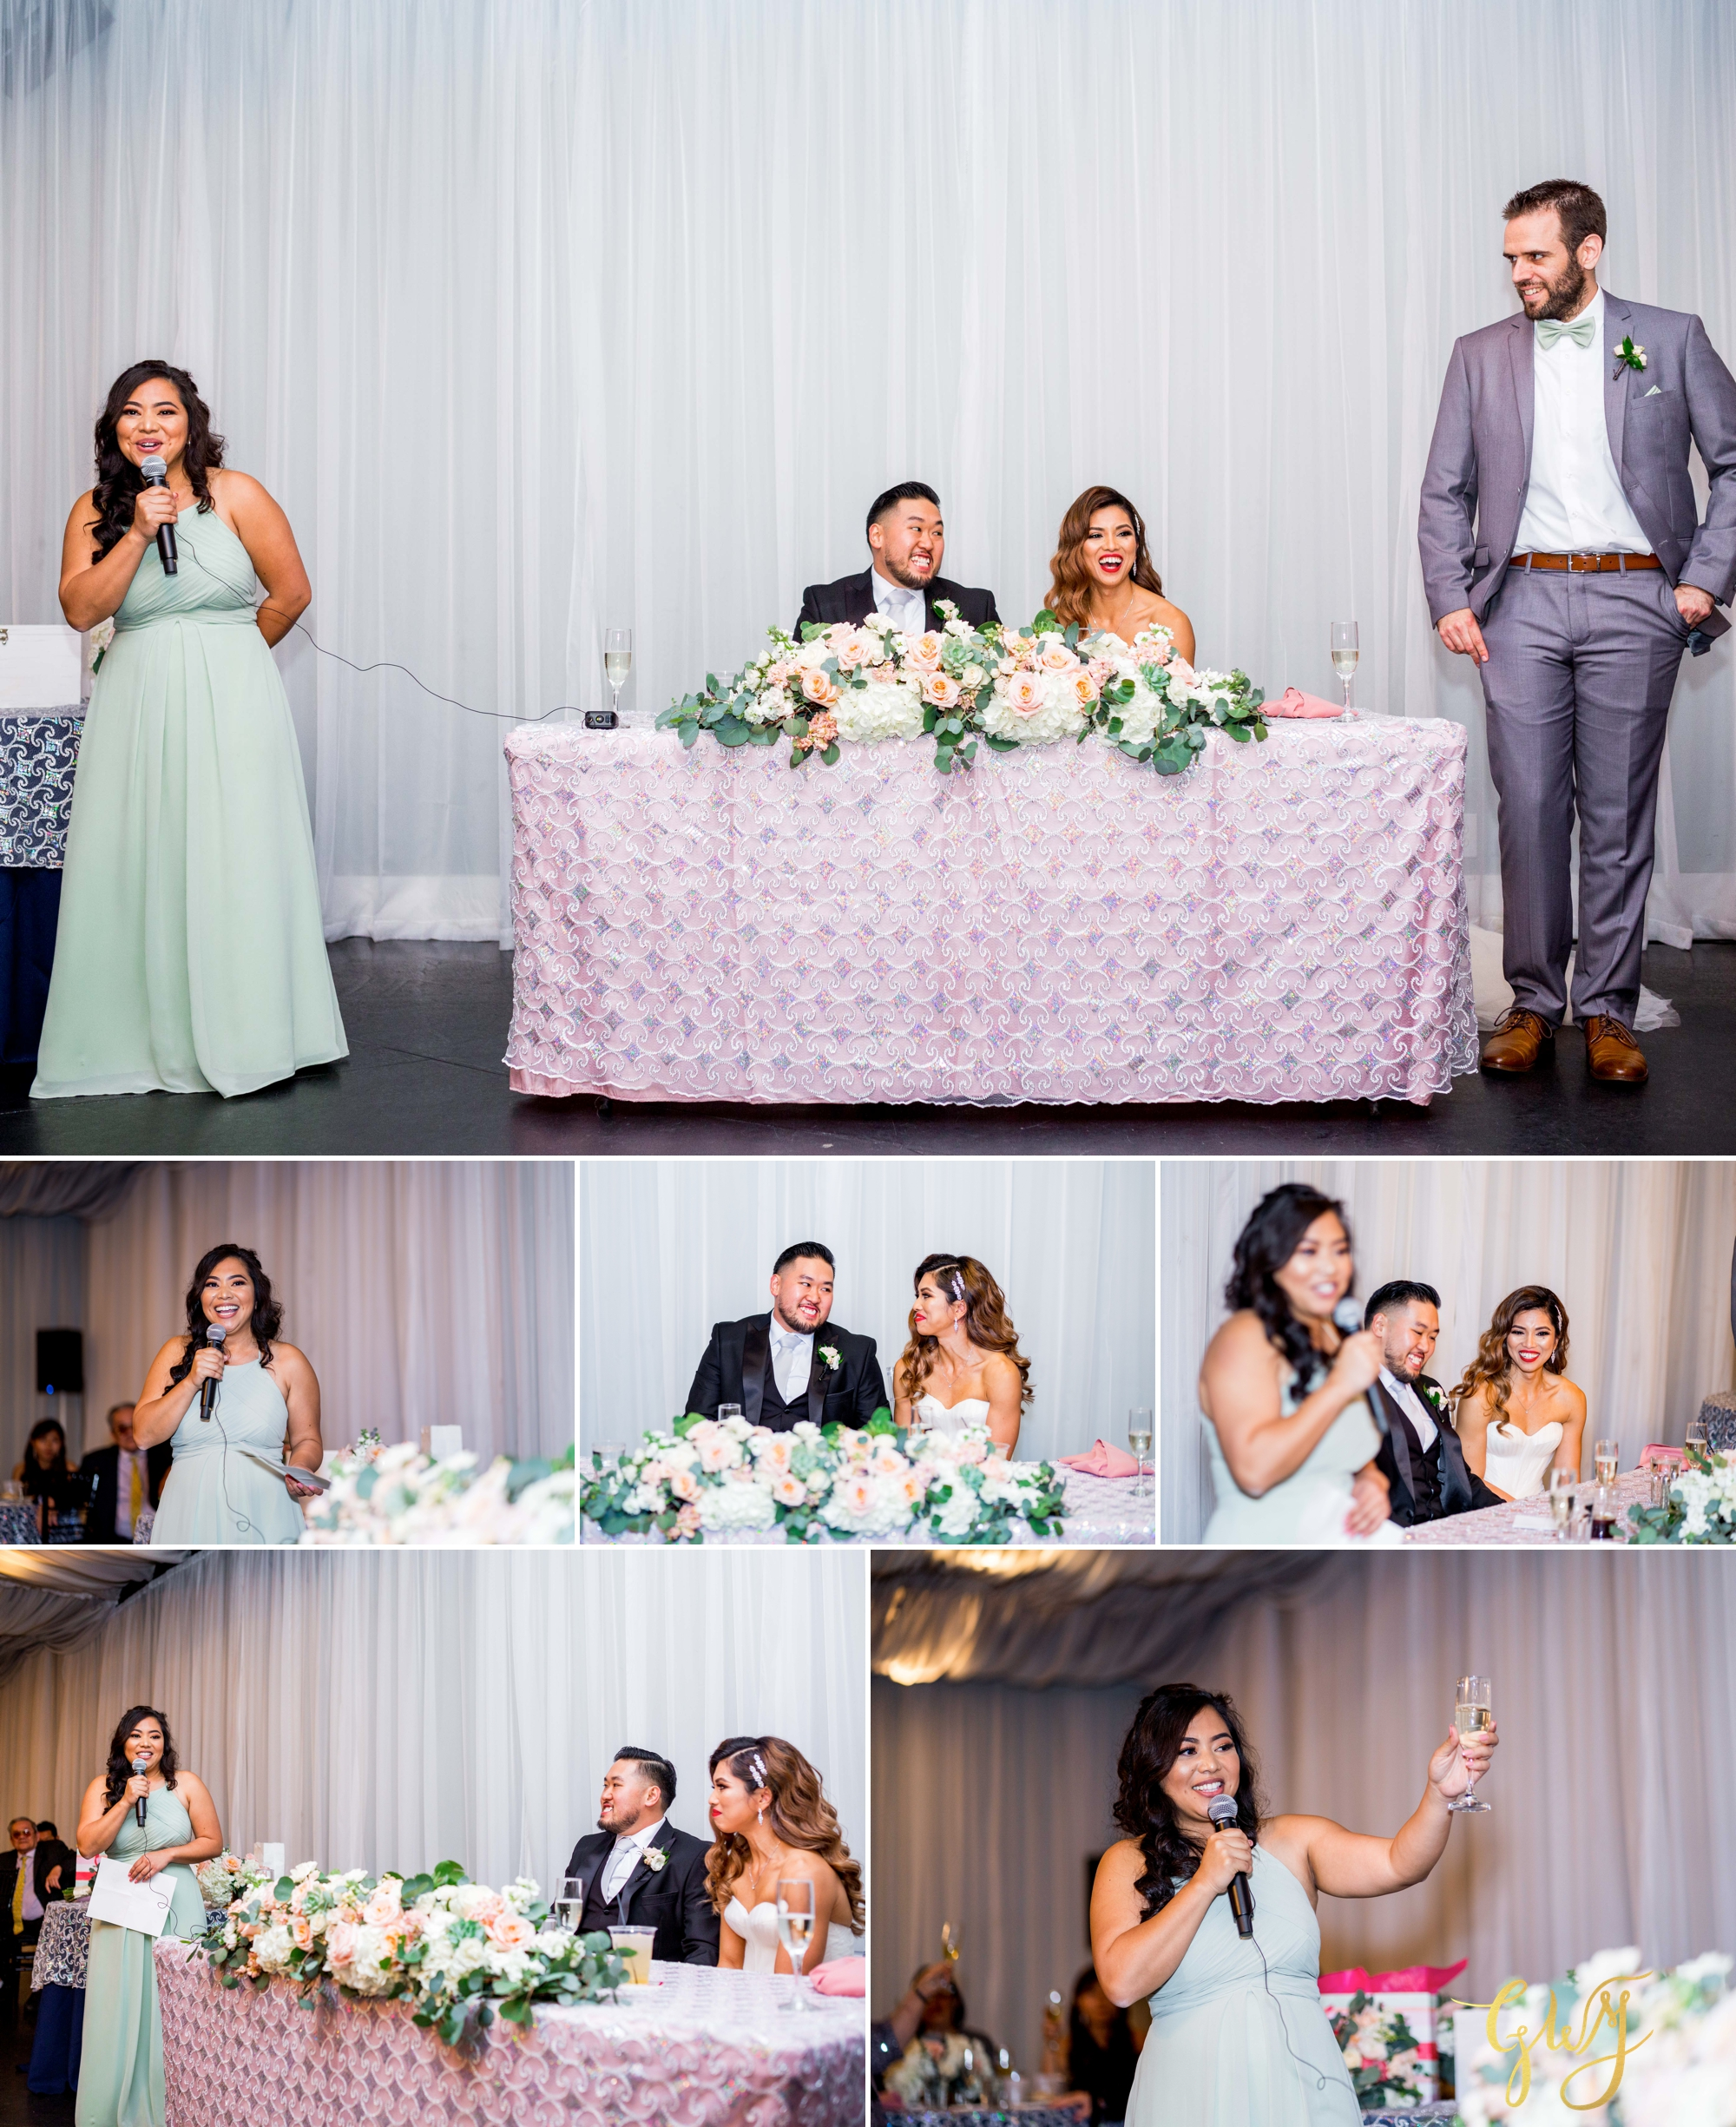 Andy + Caselyn's White House Event Center Orange County Spring Wedding by Glass Woods Media 44.jpg